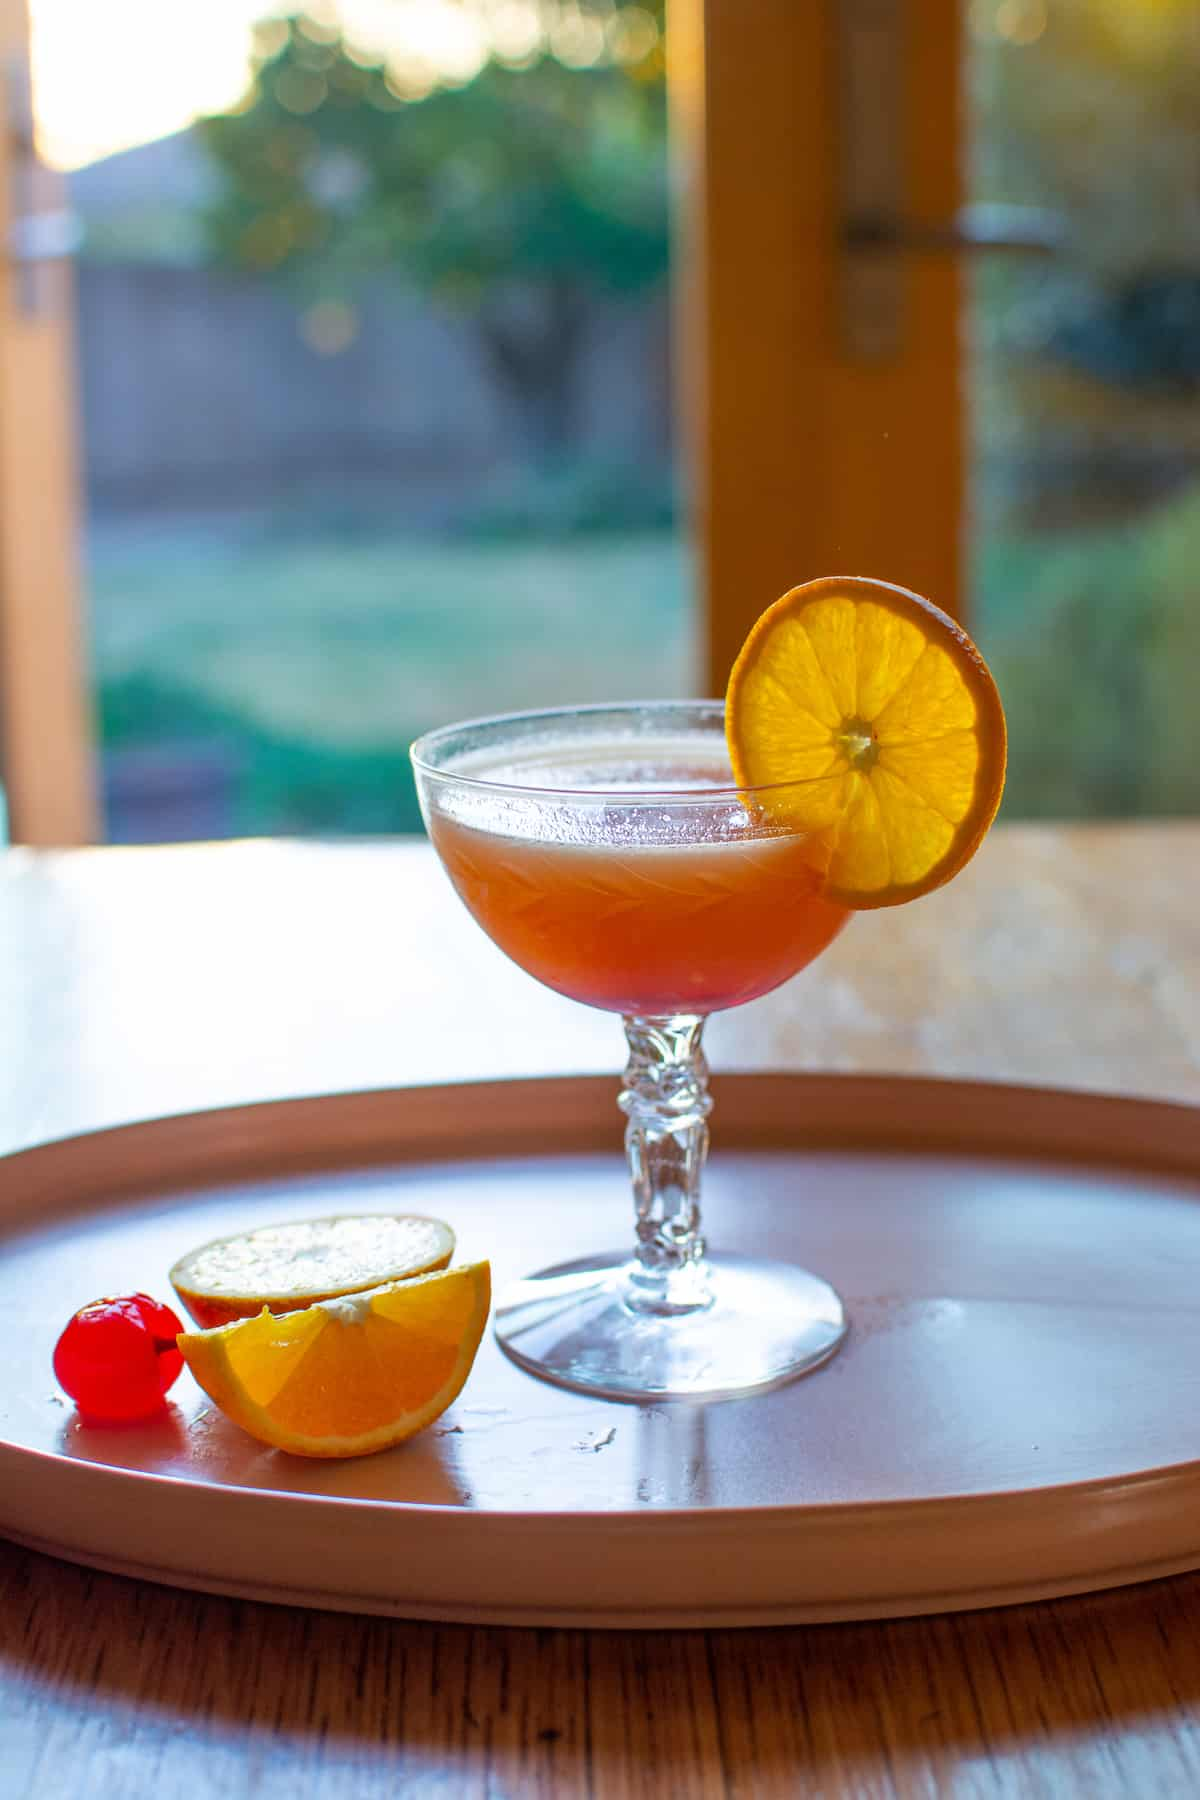 A tequila sunrise cocktail sitting on a wood table in front of an open door.